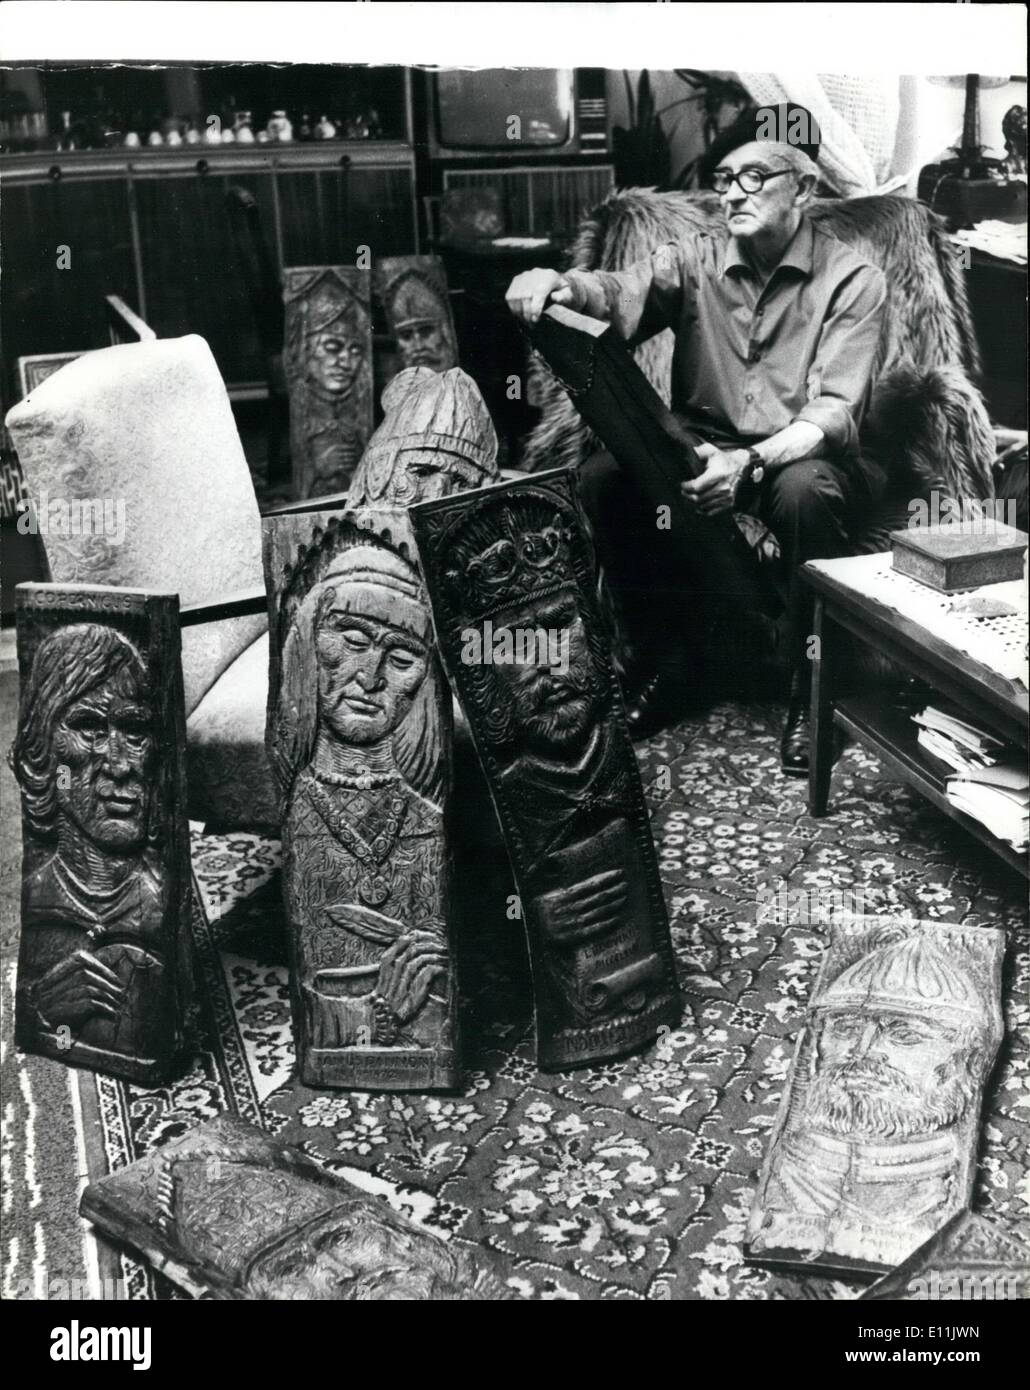 Aug. 08, 1978 - History Carved in Wood: Hungarian Sculptor Gyula Zagon seen at work carving the portraits of medieval - Stock Image